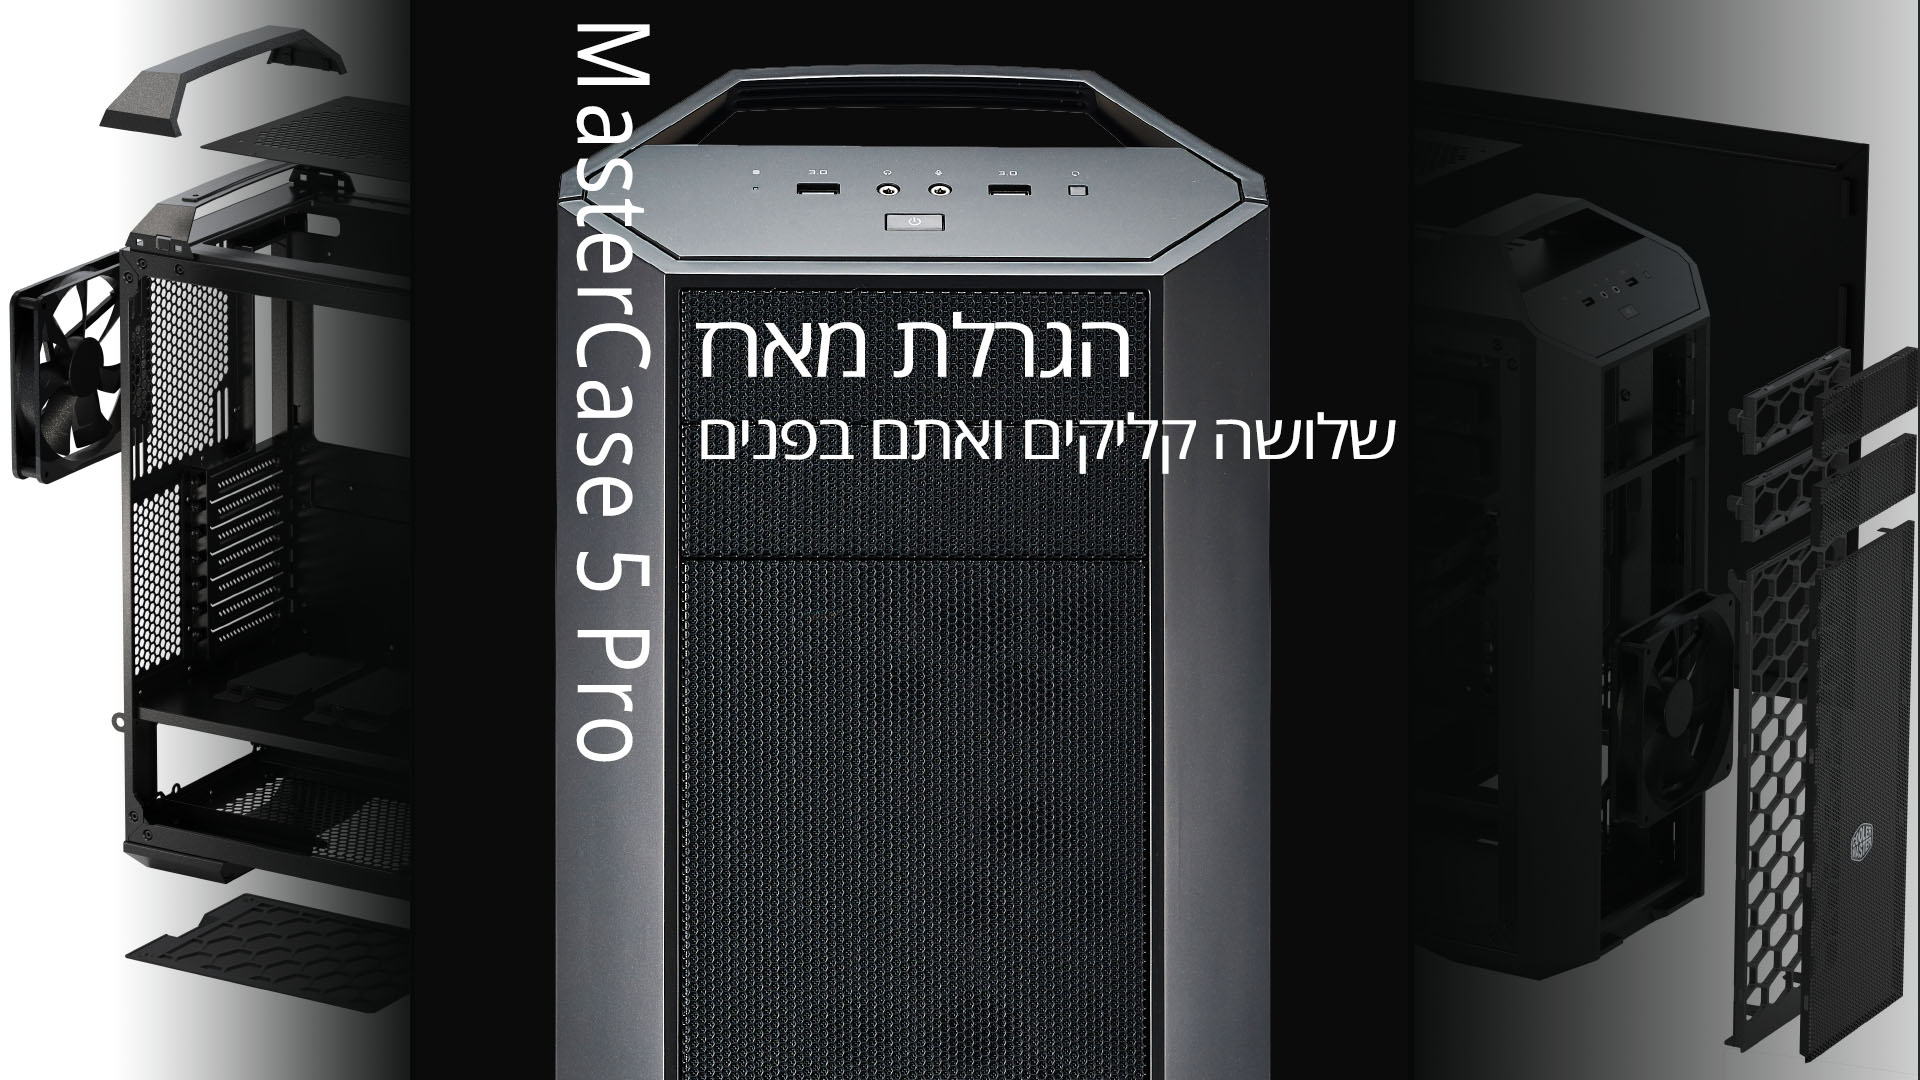 Photo of the MasterCase 5 Pro Modular Chassis Draw - the winner